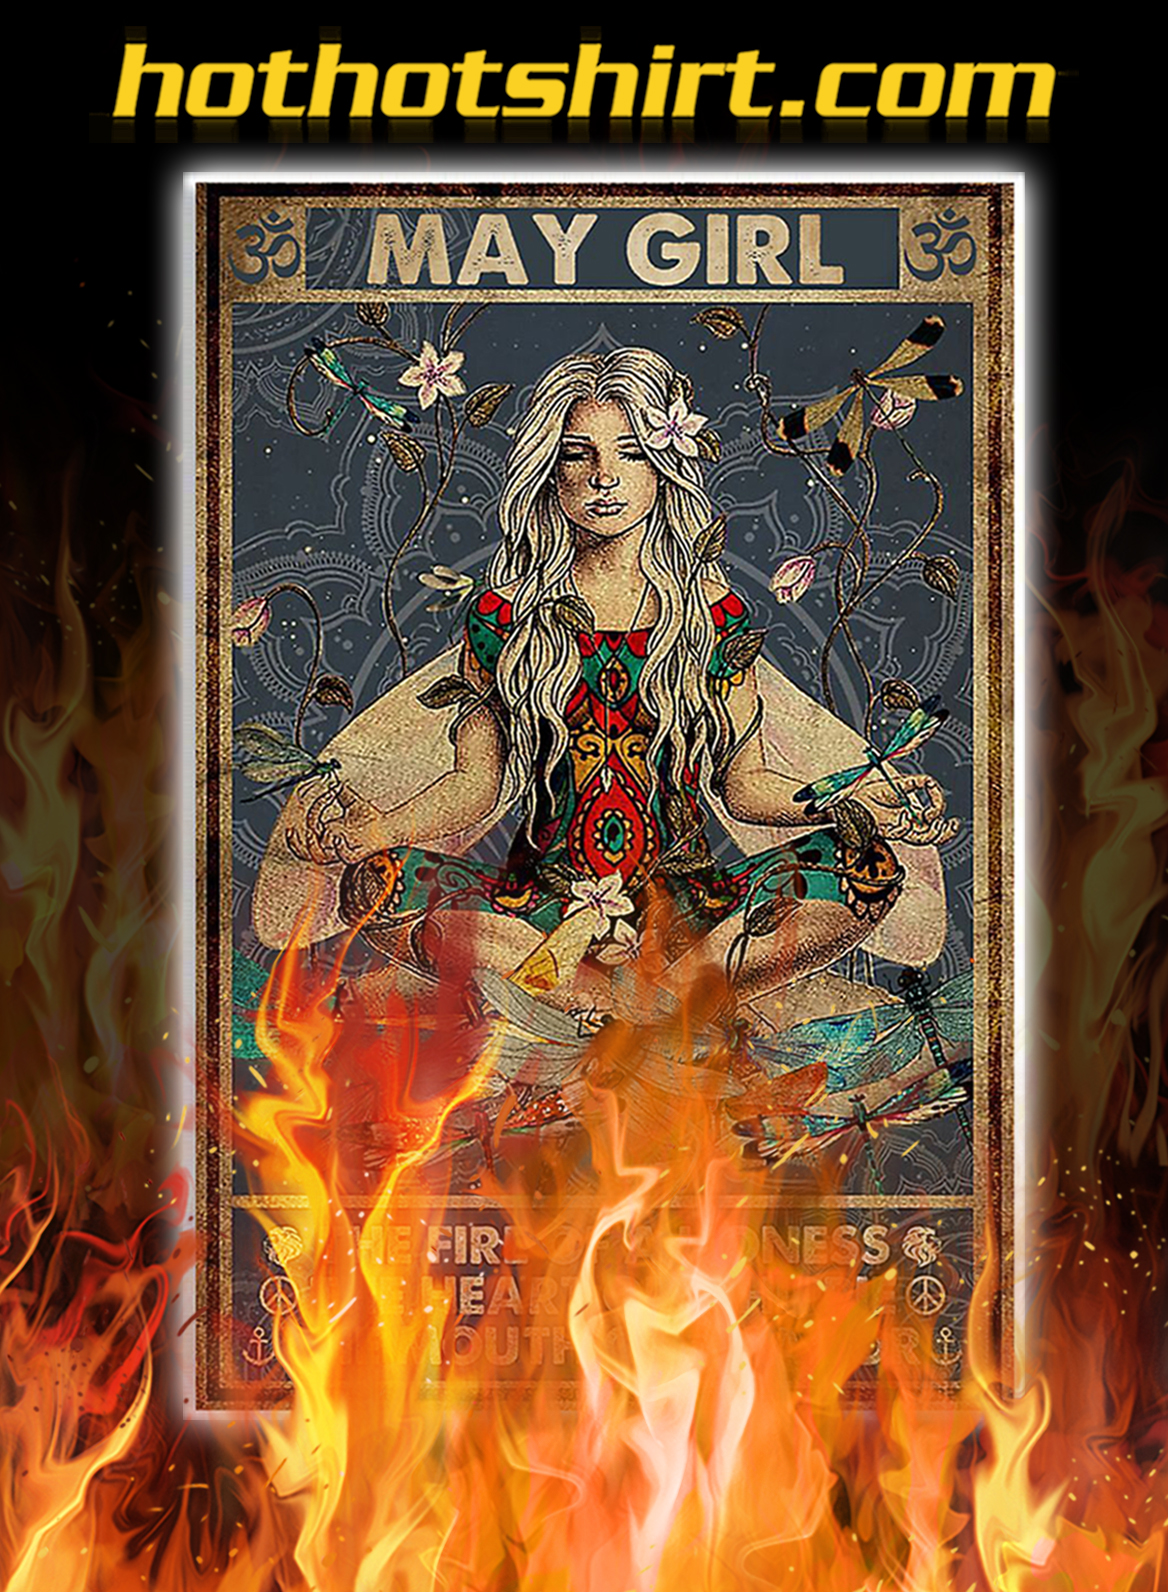 Yoga may girl the fire of a lioness poster- A1